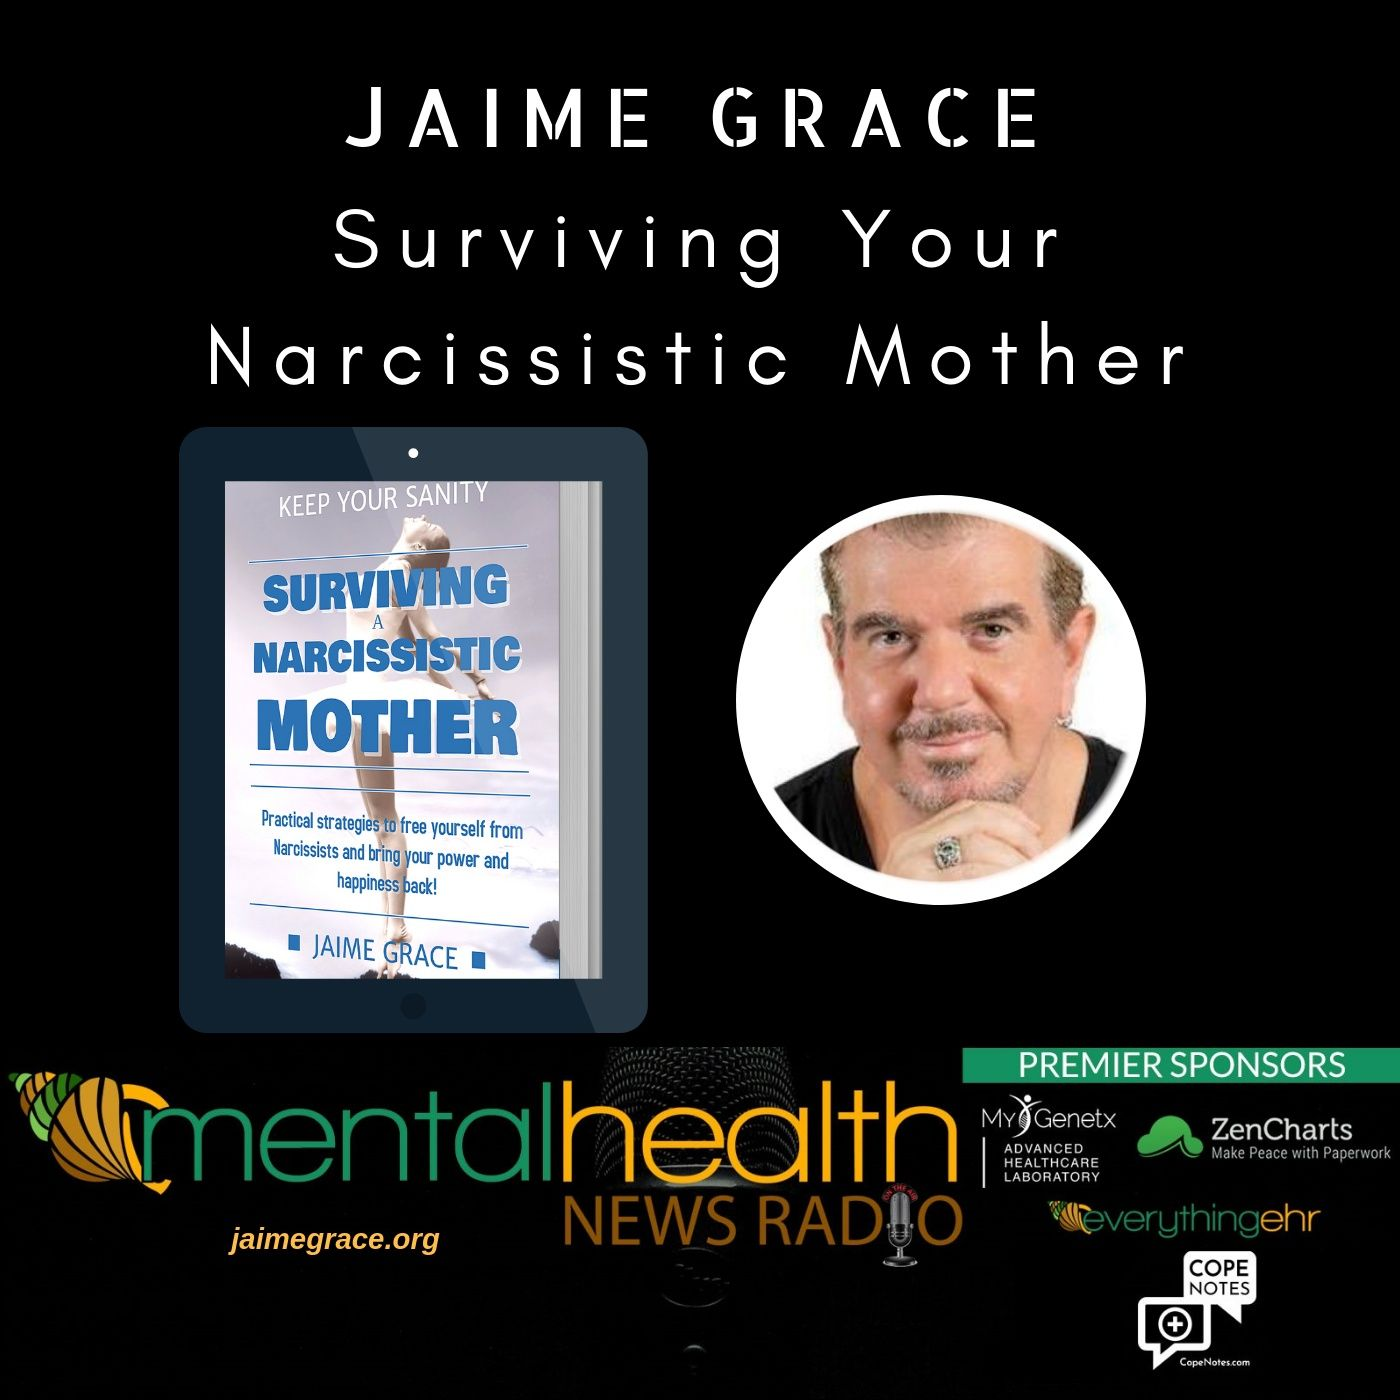 Mental Health News Radio - Surviving Your Narcissistic Mother with Jaime Grace